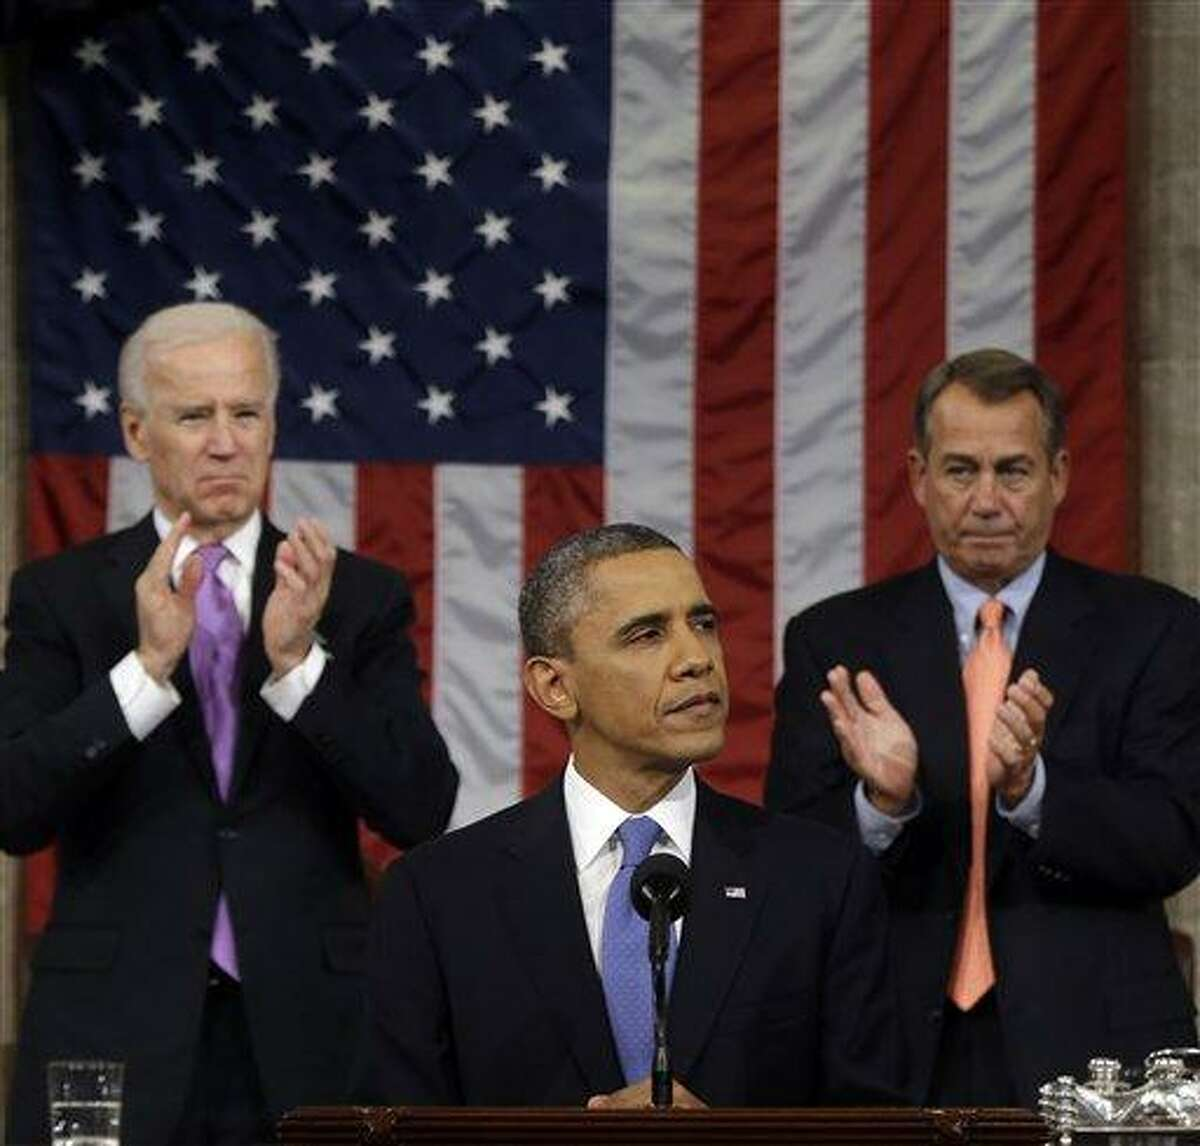 Vice President Joe Biden and House Speaker John Boehner of Ohio applaud President Barack Obama as he gives his State of the Union address during a joint session of Congress on Capitol Hill in Washington, Tuesday Feb. 12, 2013. (AP Photo/Charles Dharapak, Pool)